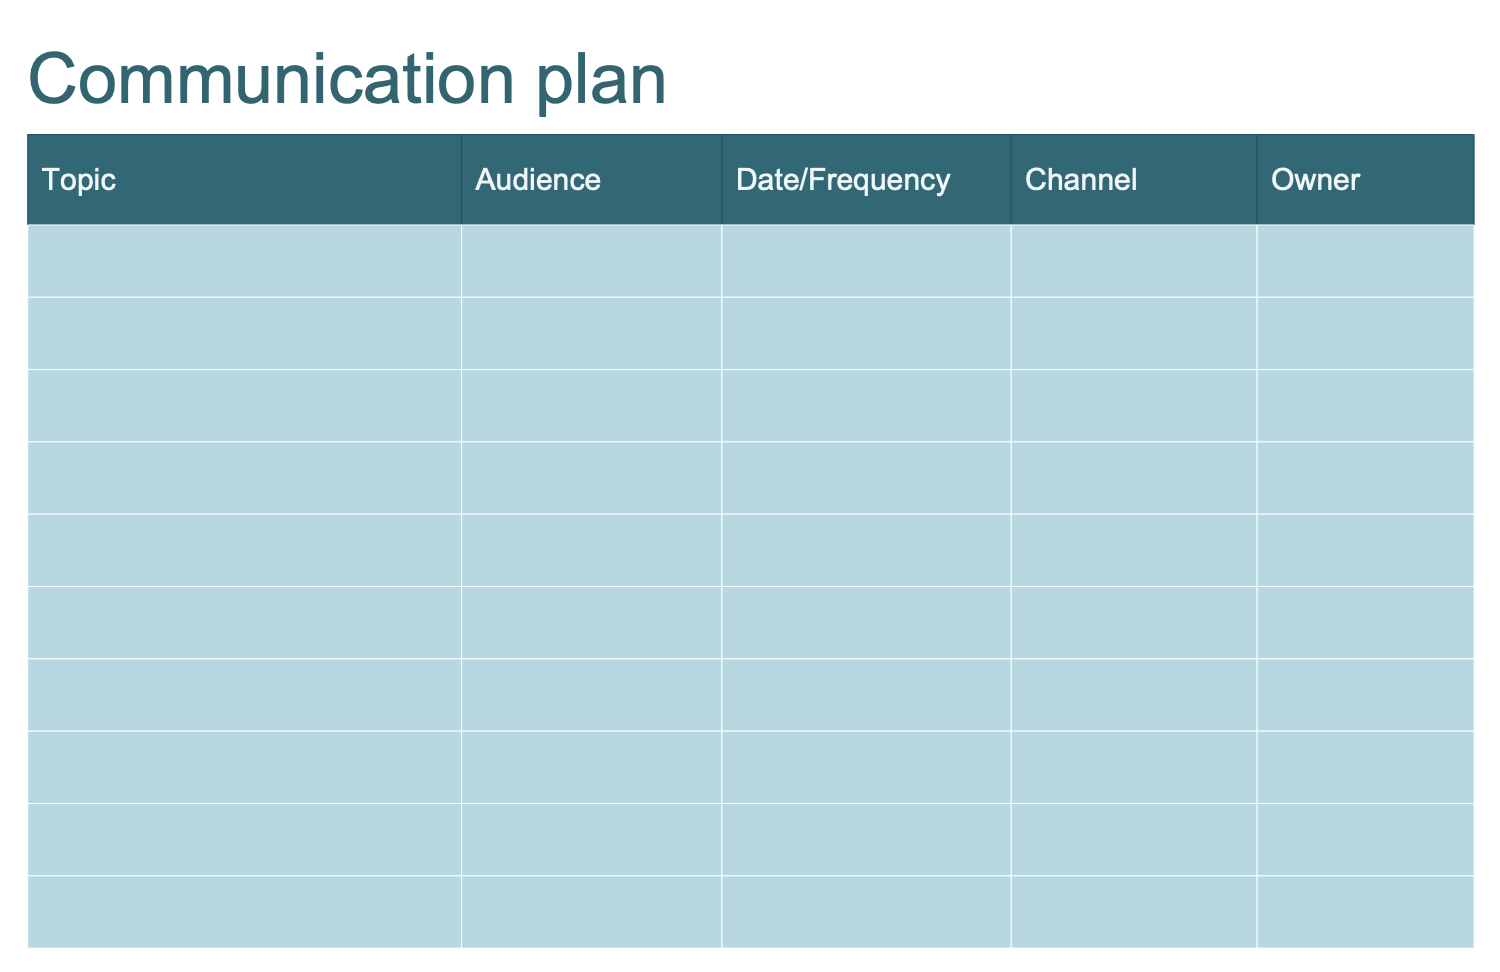 Communication Plan Table